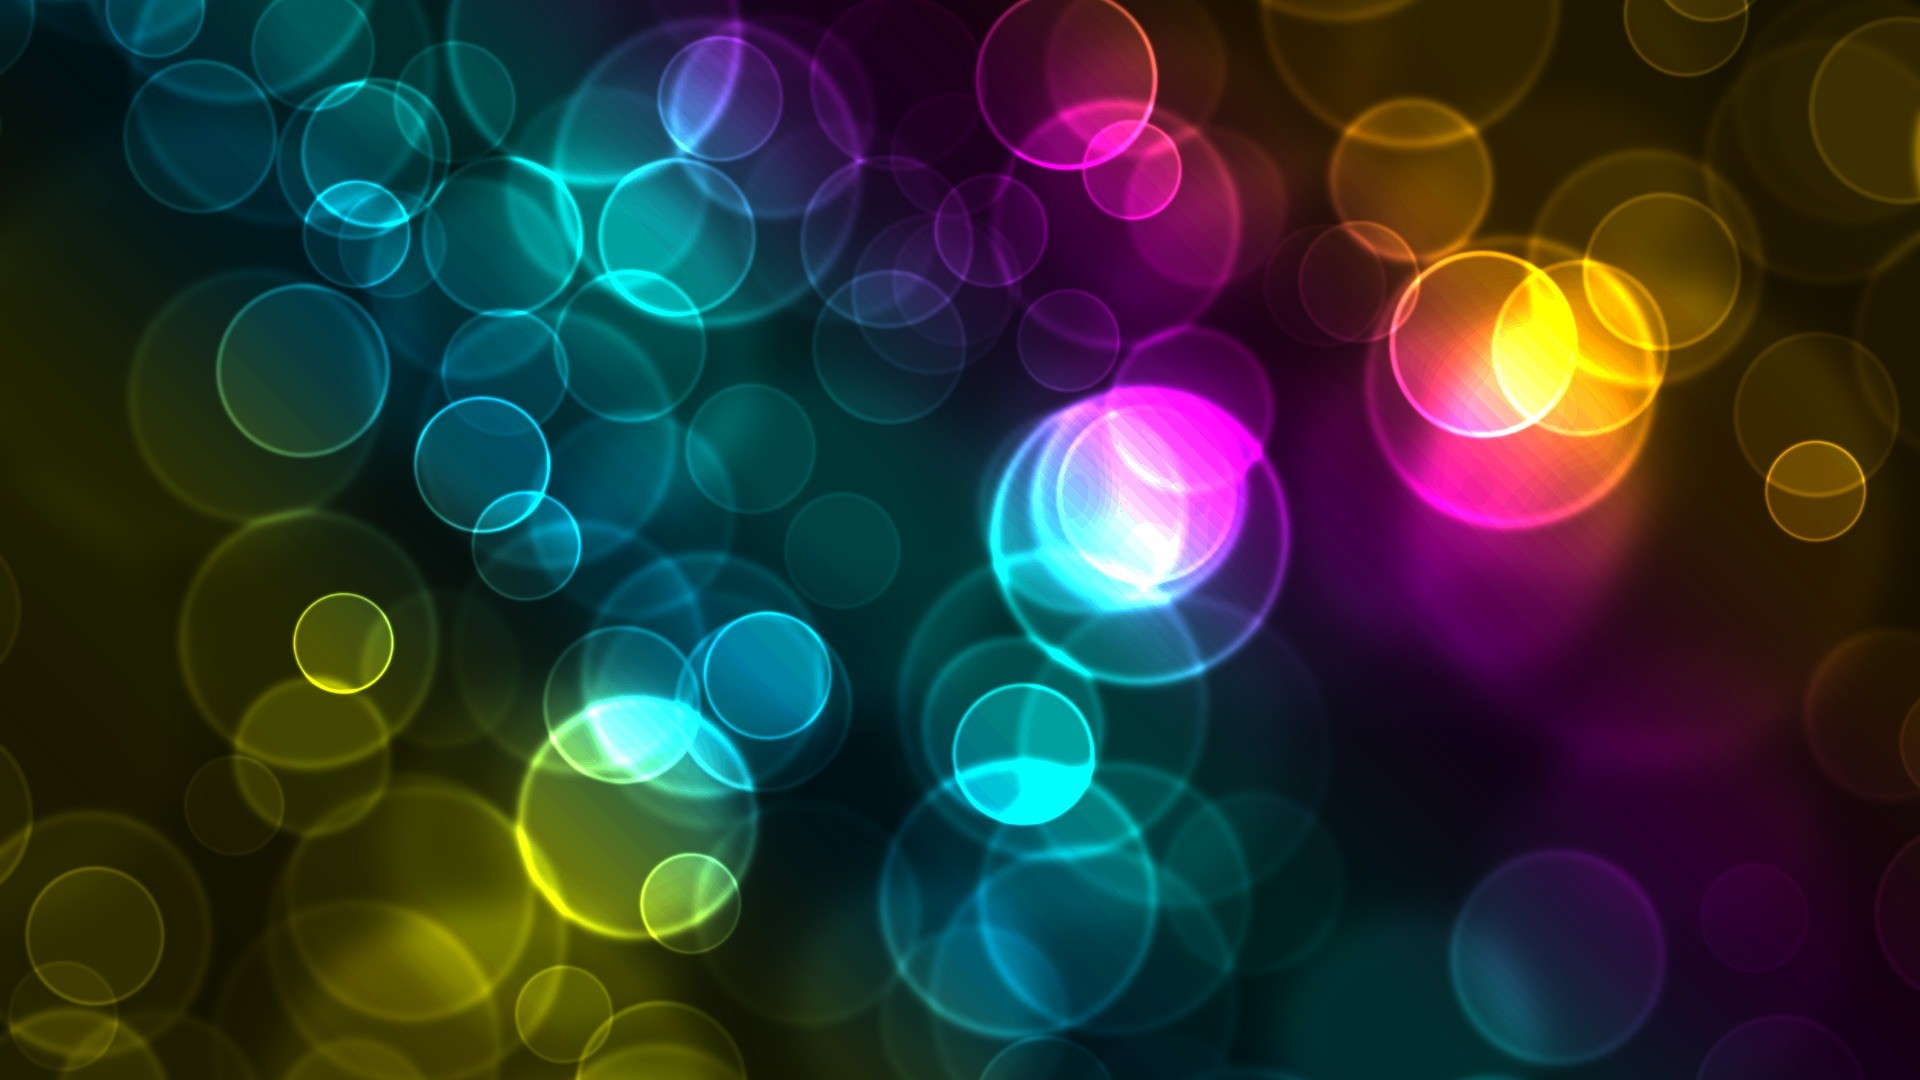 Glowing Circles Glowing Circles Wallpapers